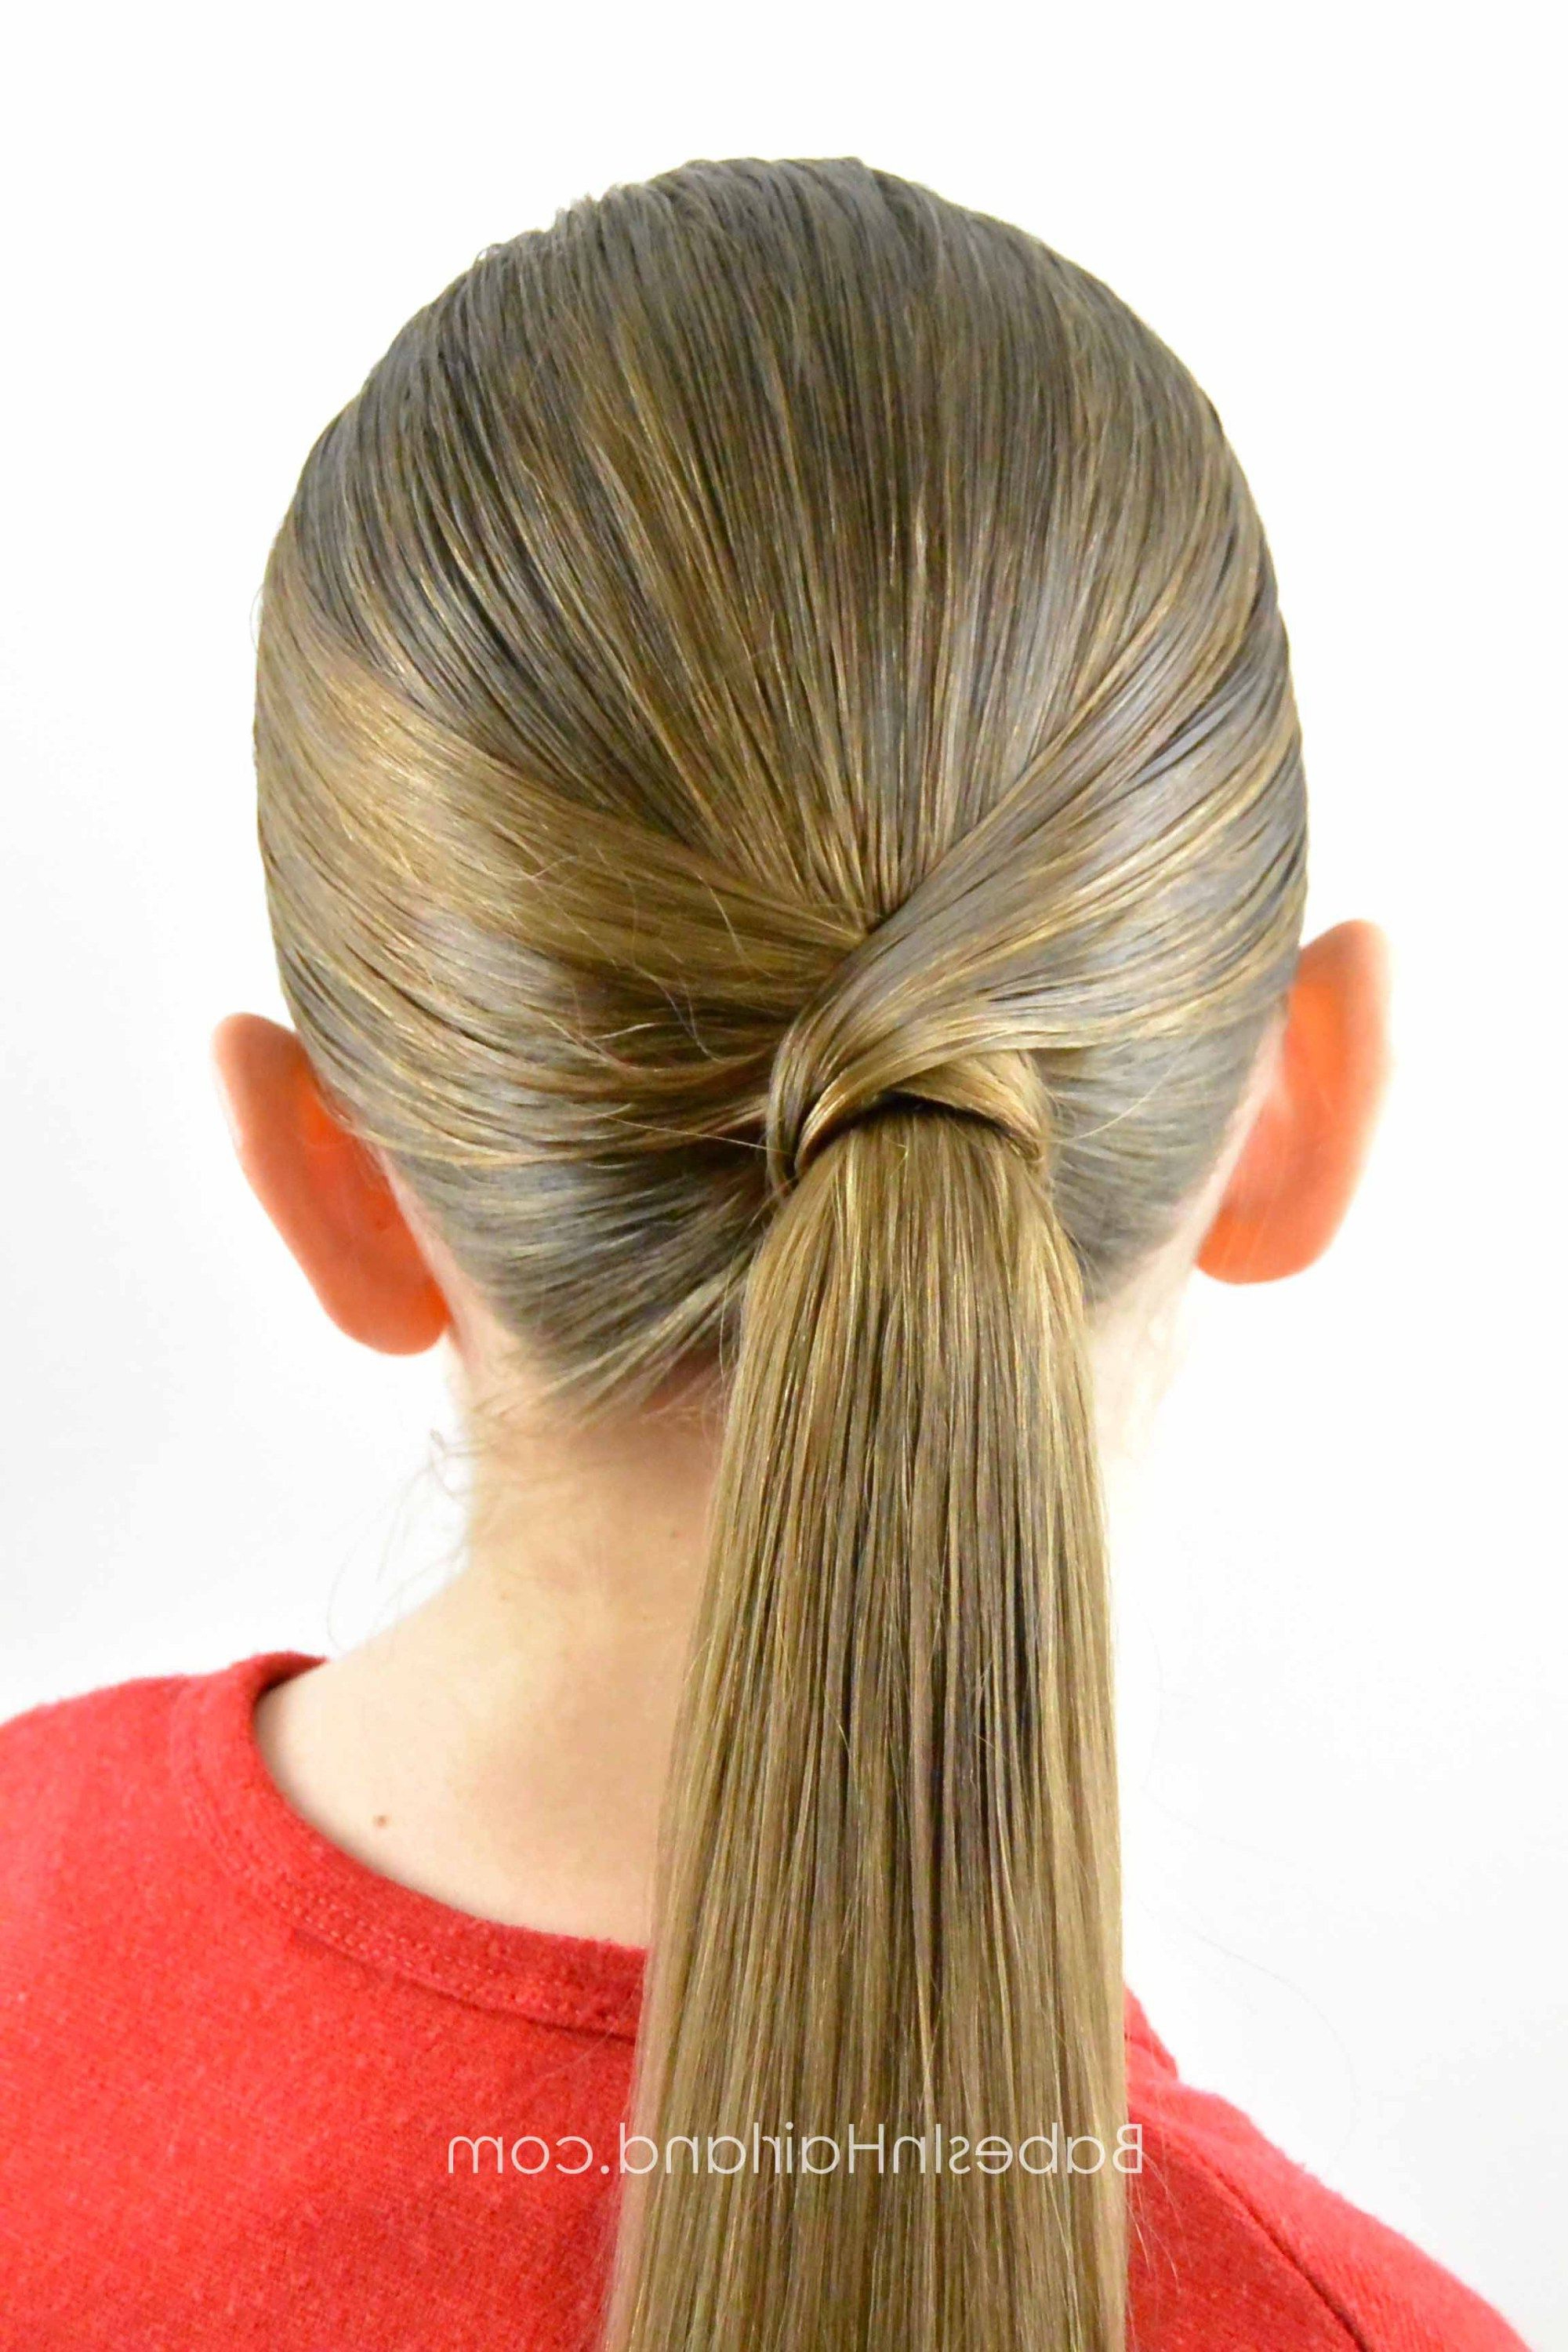 Ponytail Hairstyles, Hair Styles For Most Popular Wrapped Ponytail Hairstyles (View 12 of 20)